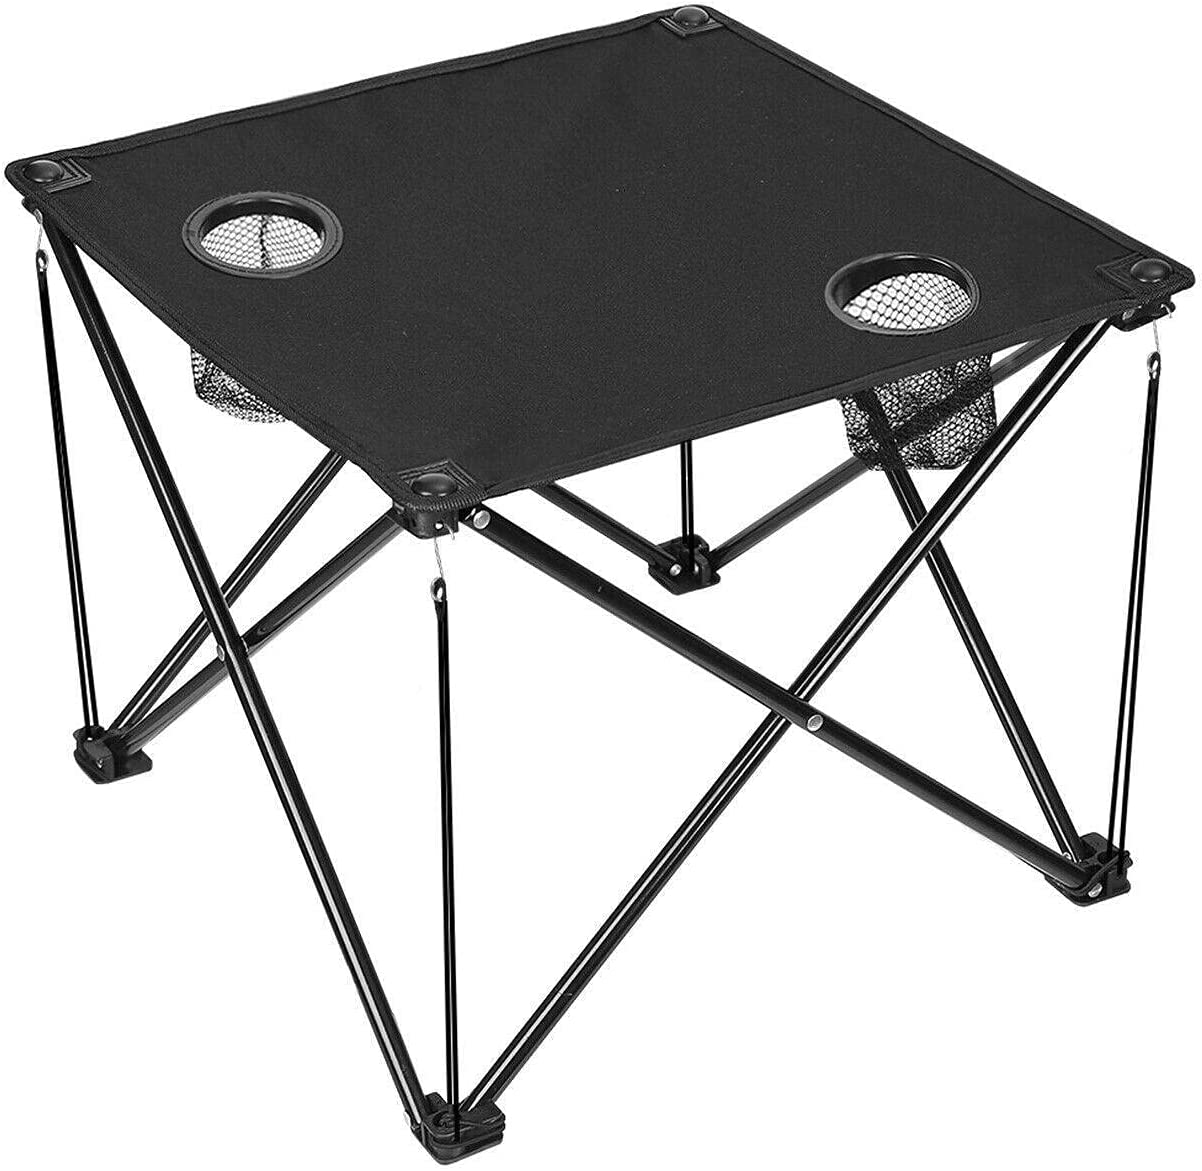 Foldable Camping Picnic Beach Max 64% OFF Table w Bag Cup I Carrying Holders Manufacturer regenerated product